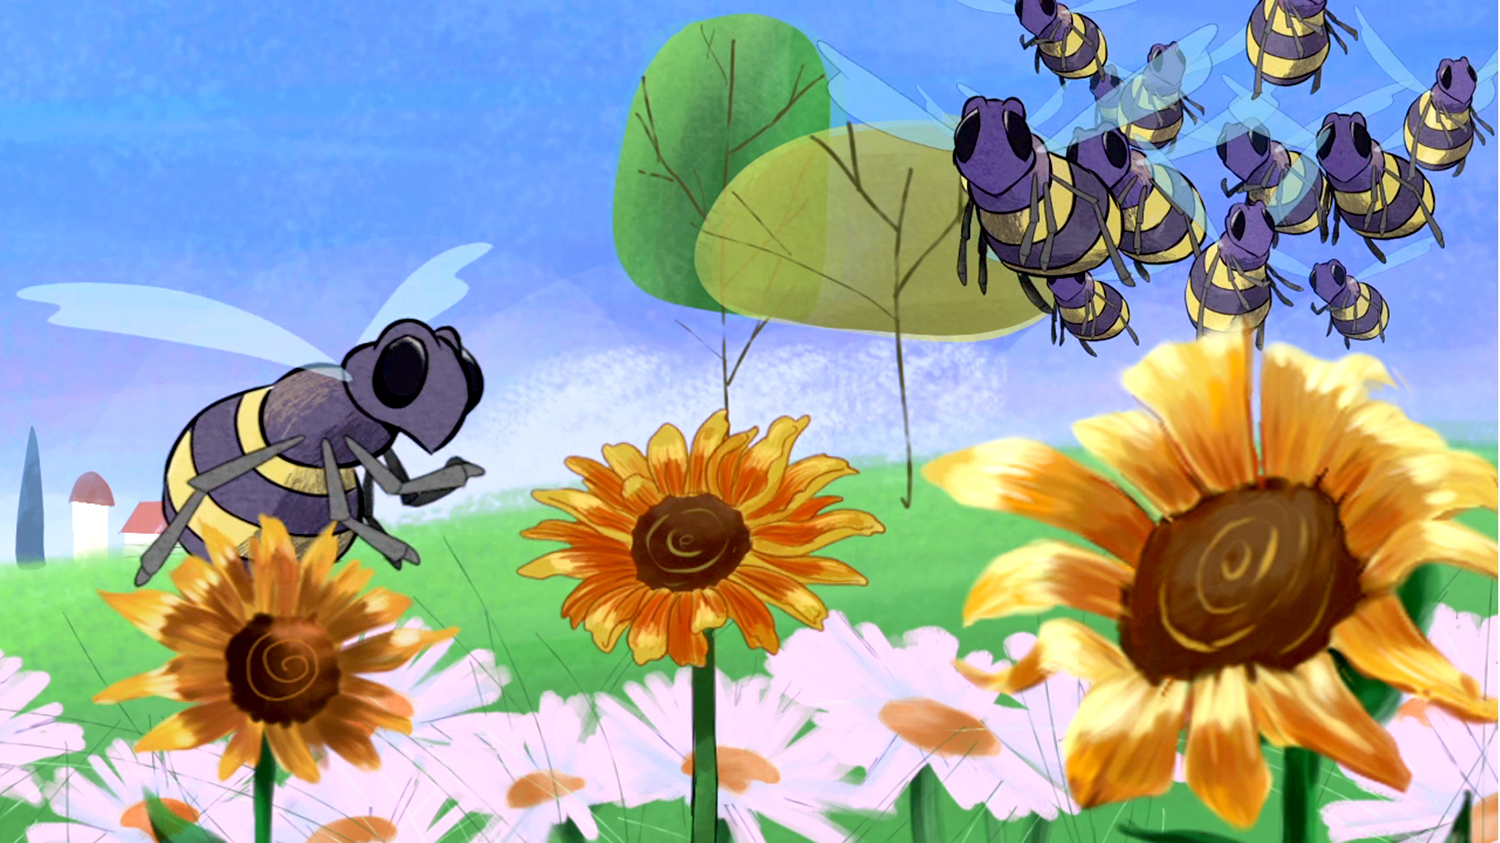 A group of bees gather on a flower